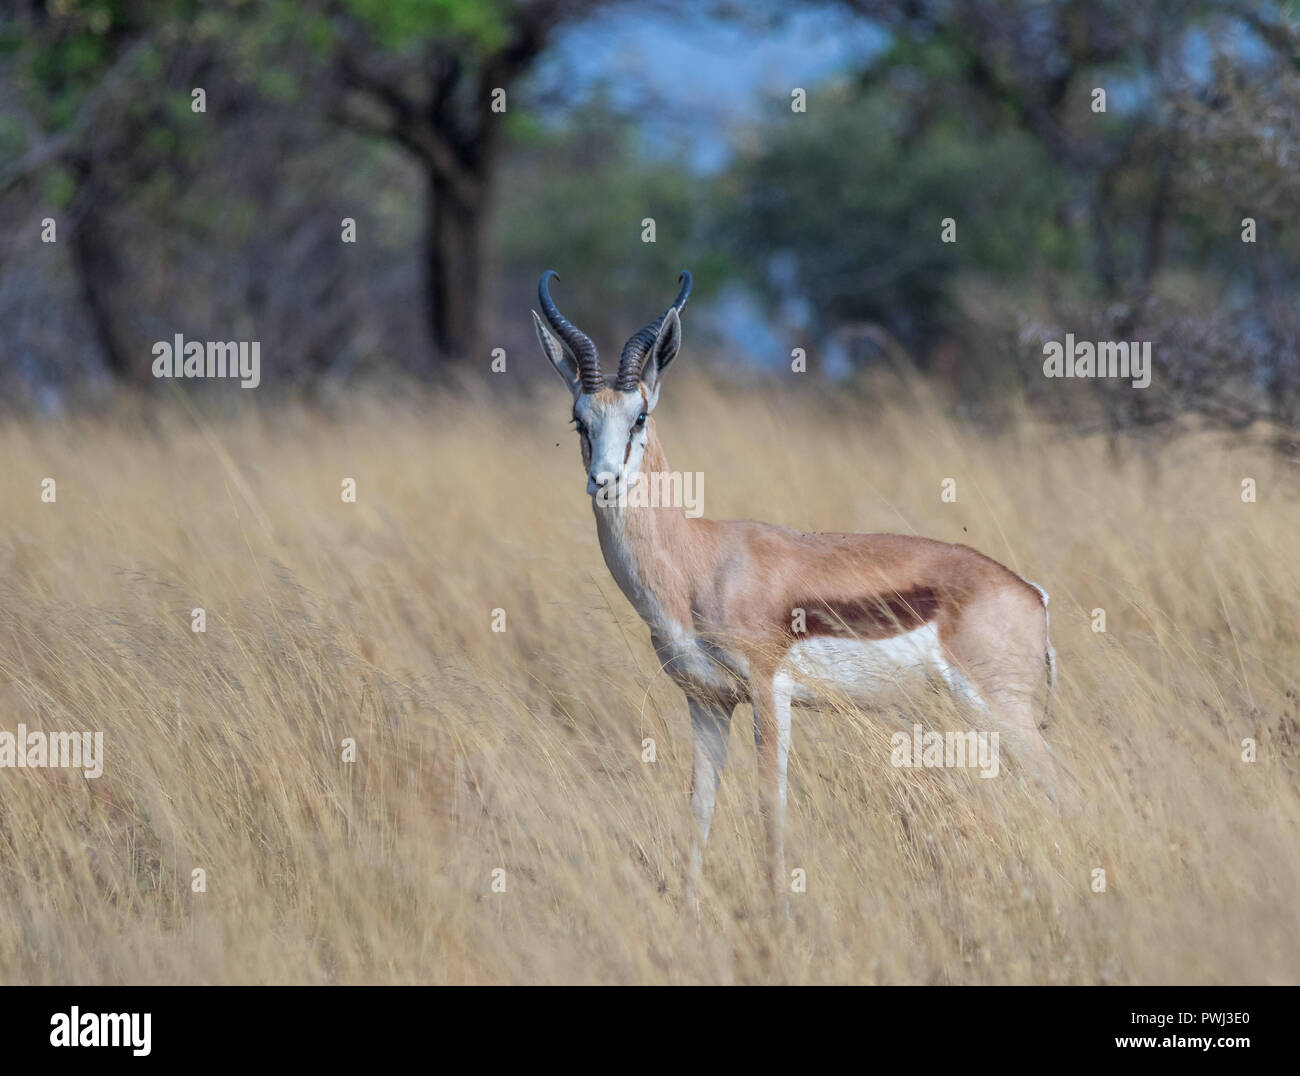 A springbok isolated in the long grass in the African wilderness image with copy space in landscape format - Stock Image